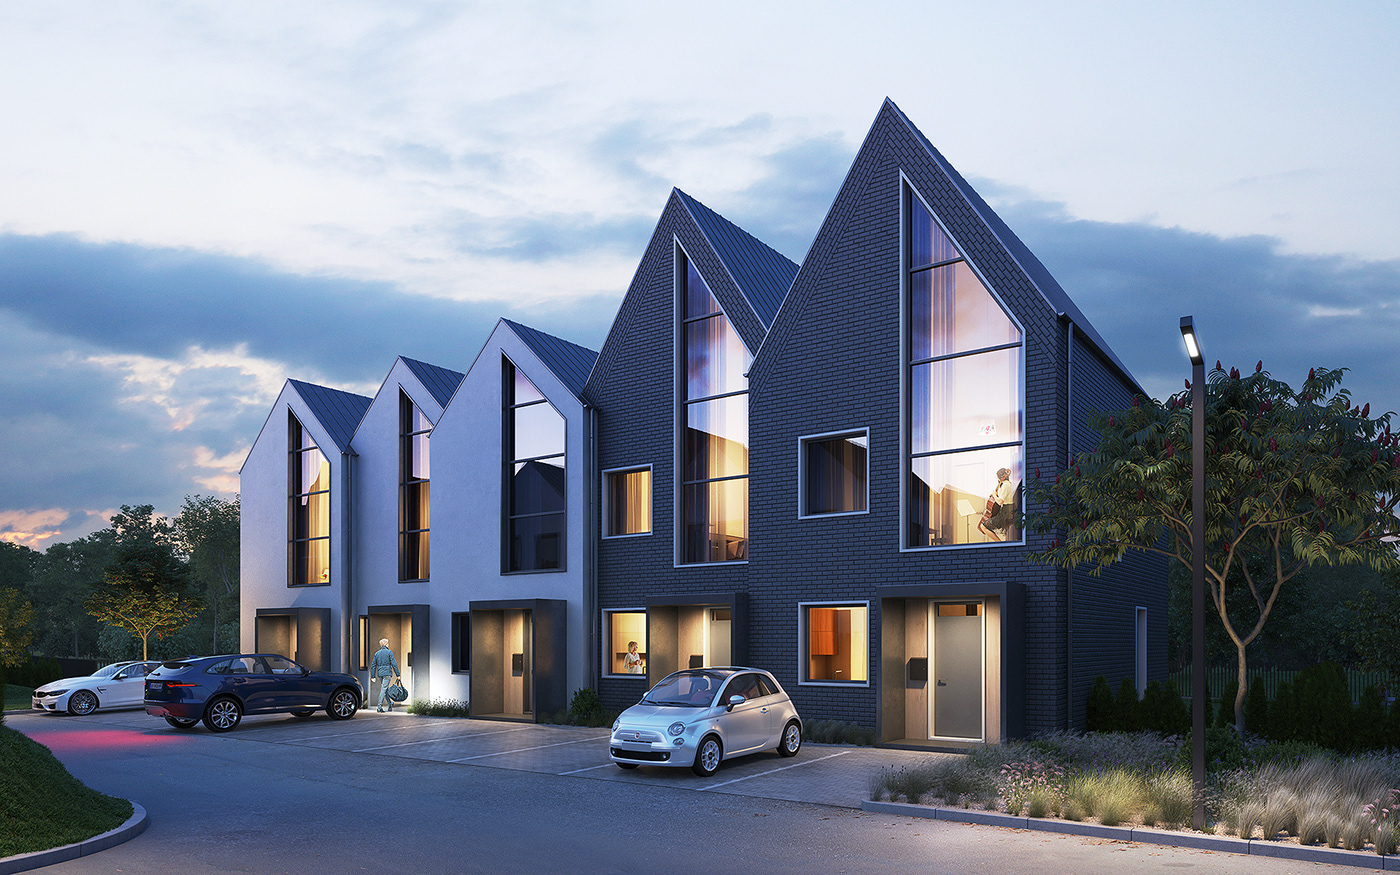 architectural visualization visualisation norway lithuania finland Sweden